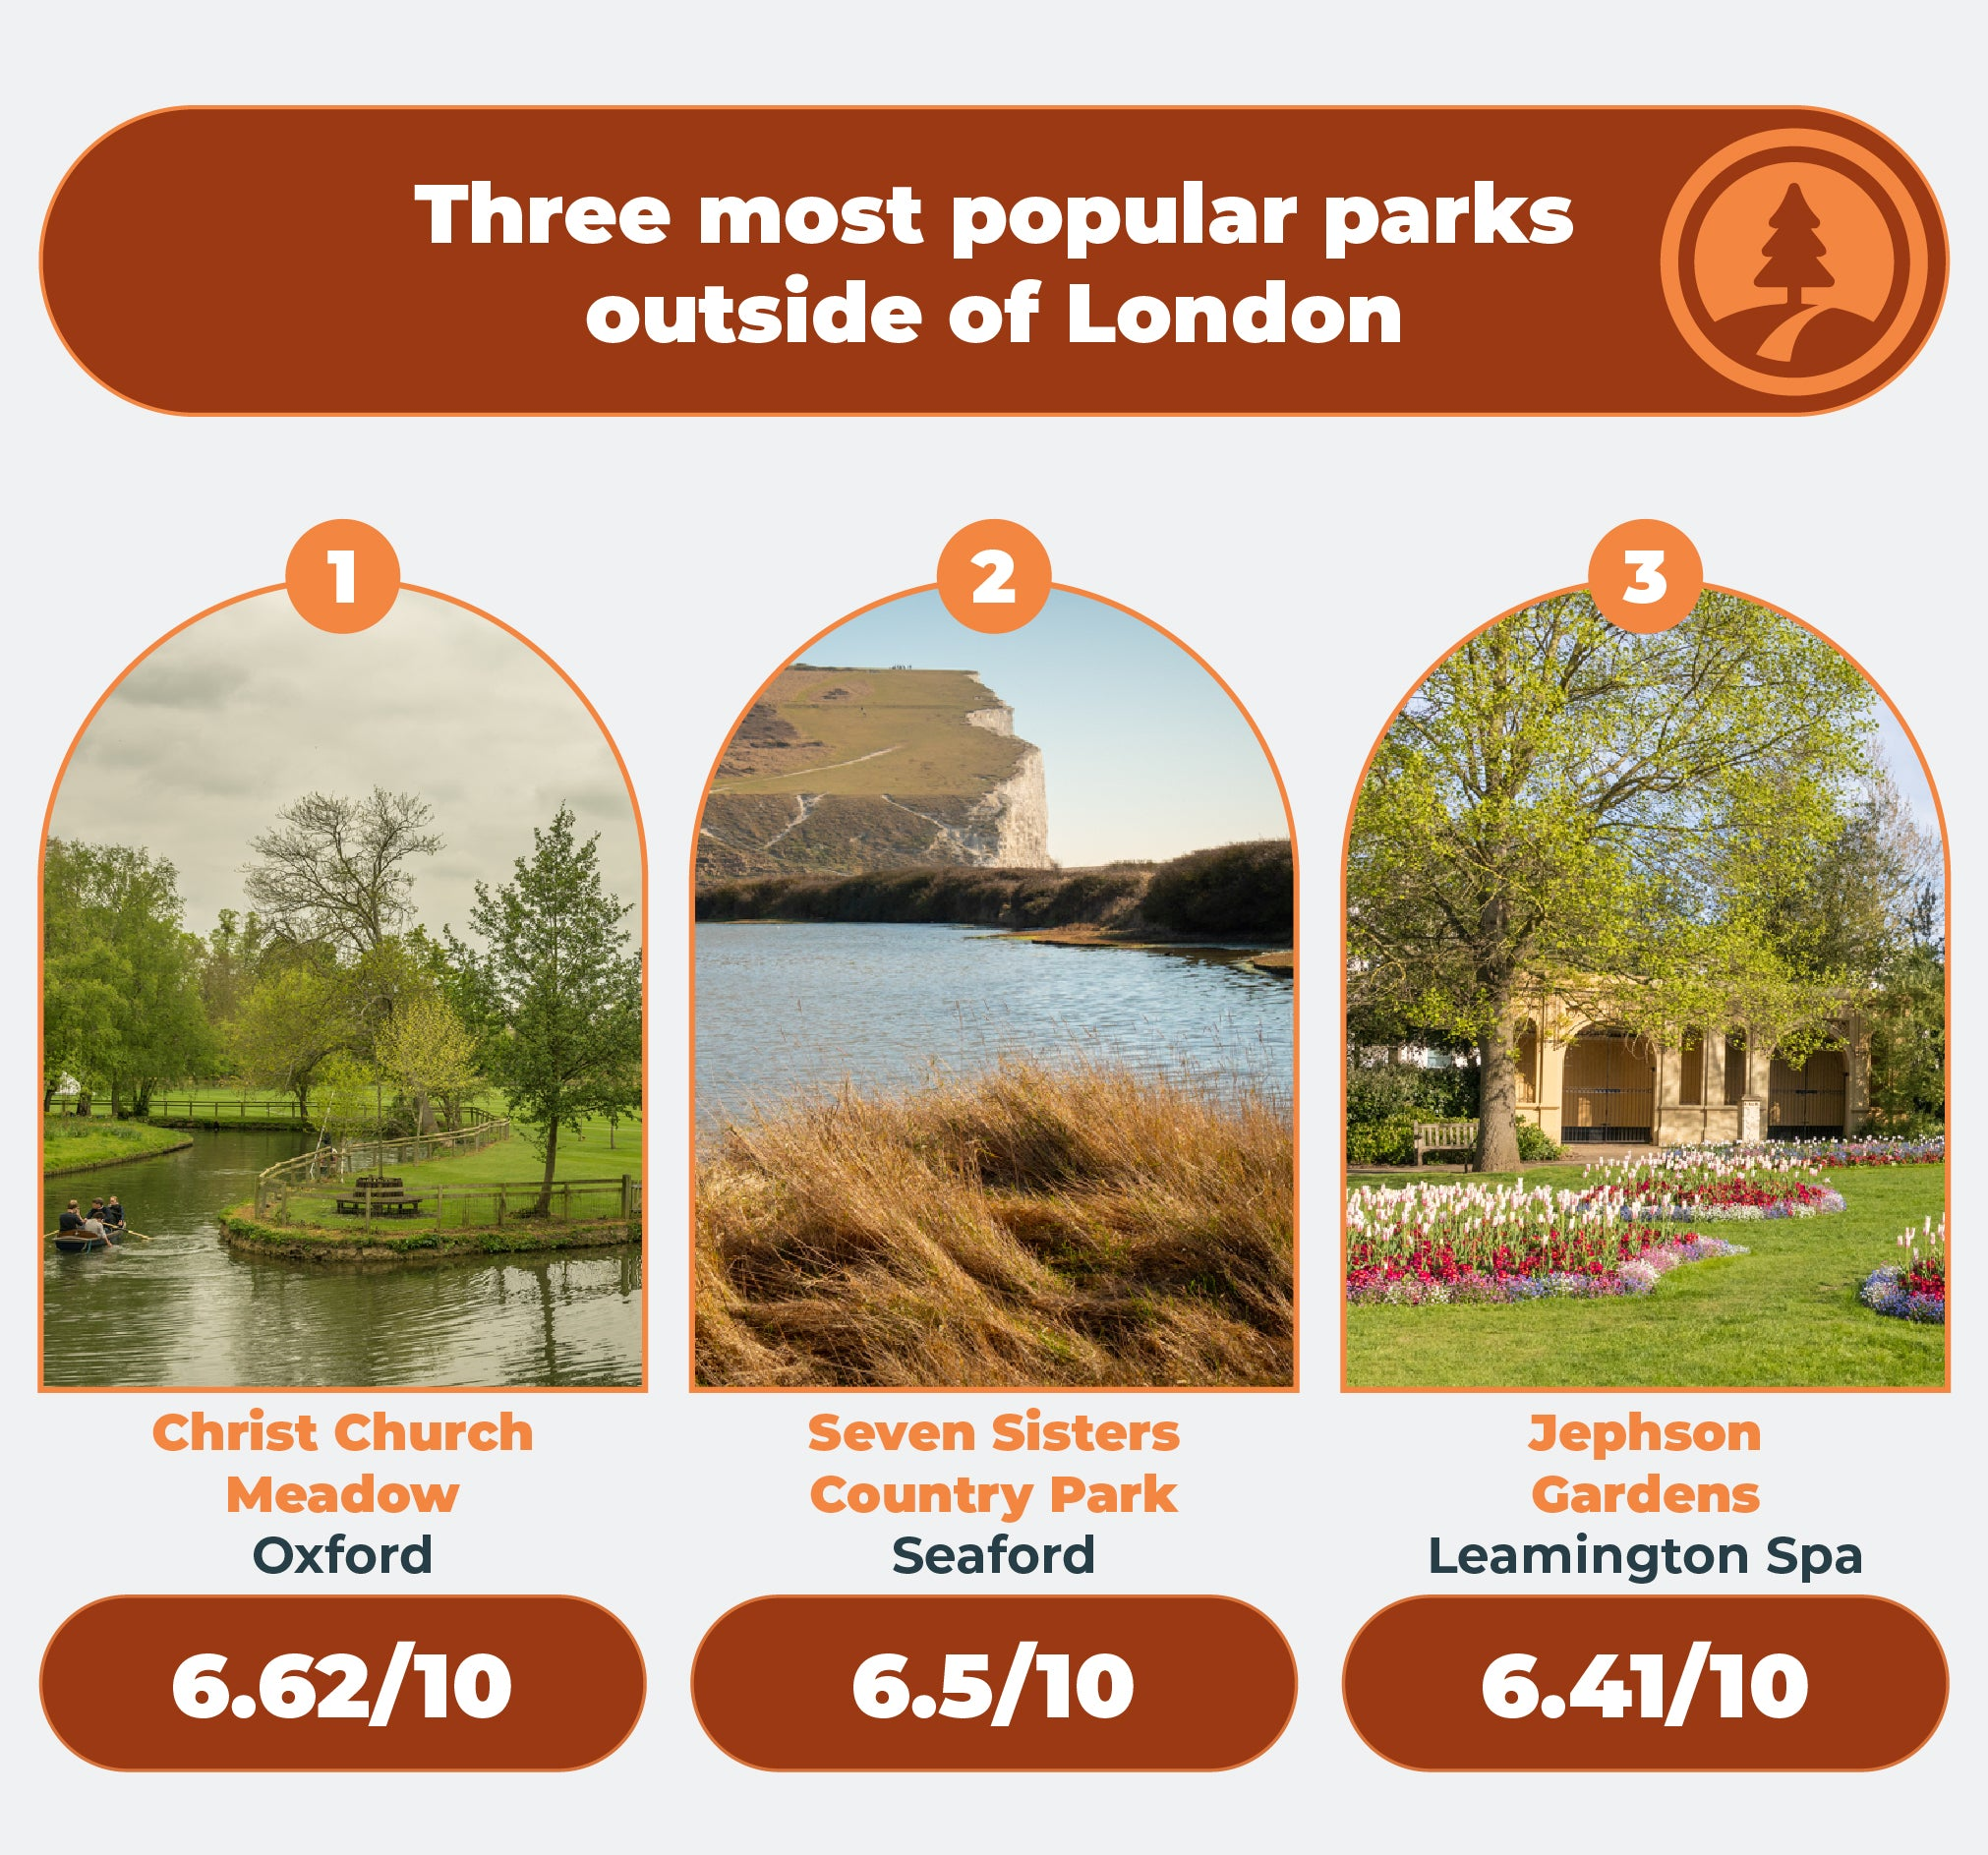 3 most popular parks outside of London